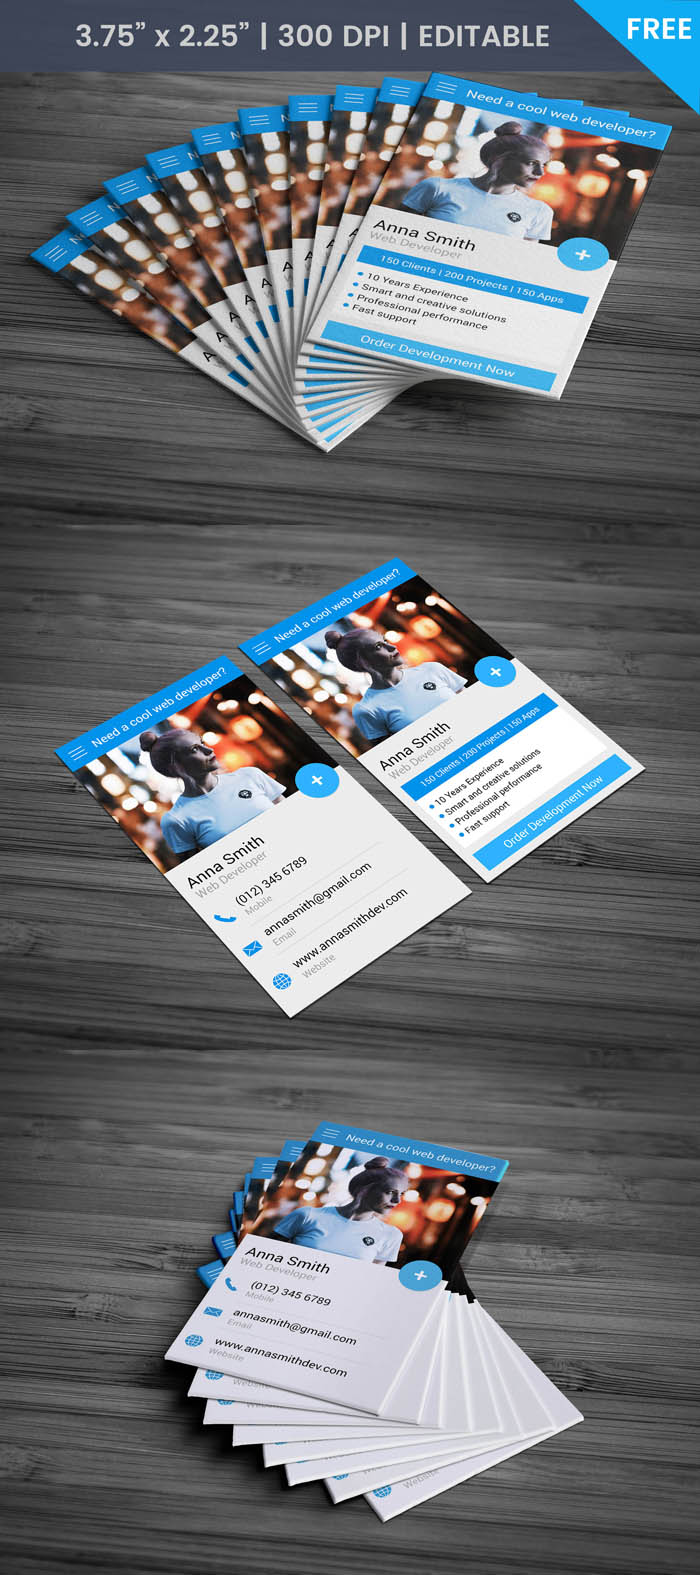 Free Webmaster Business Card Template